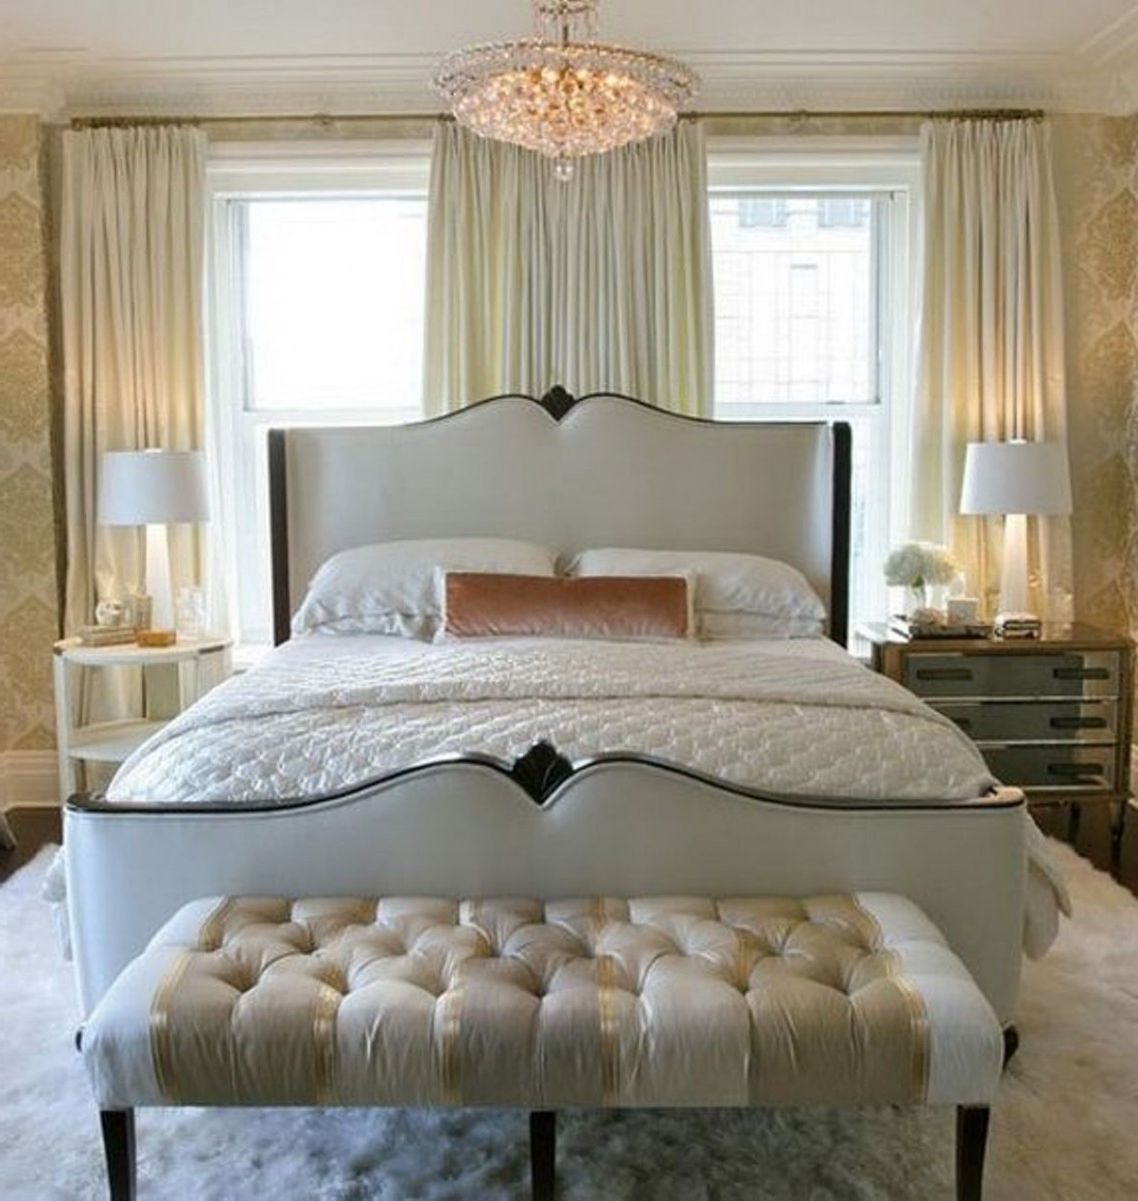 Romantic Bedroom Theme for a Couple | Lovable Nights with ...